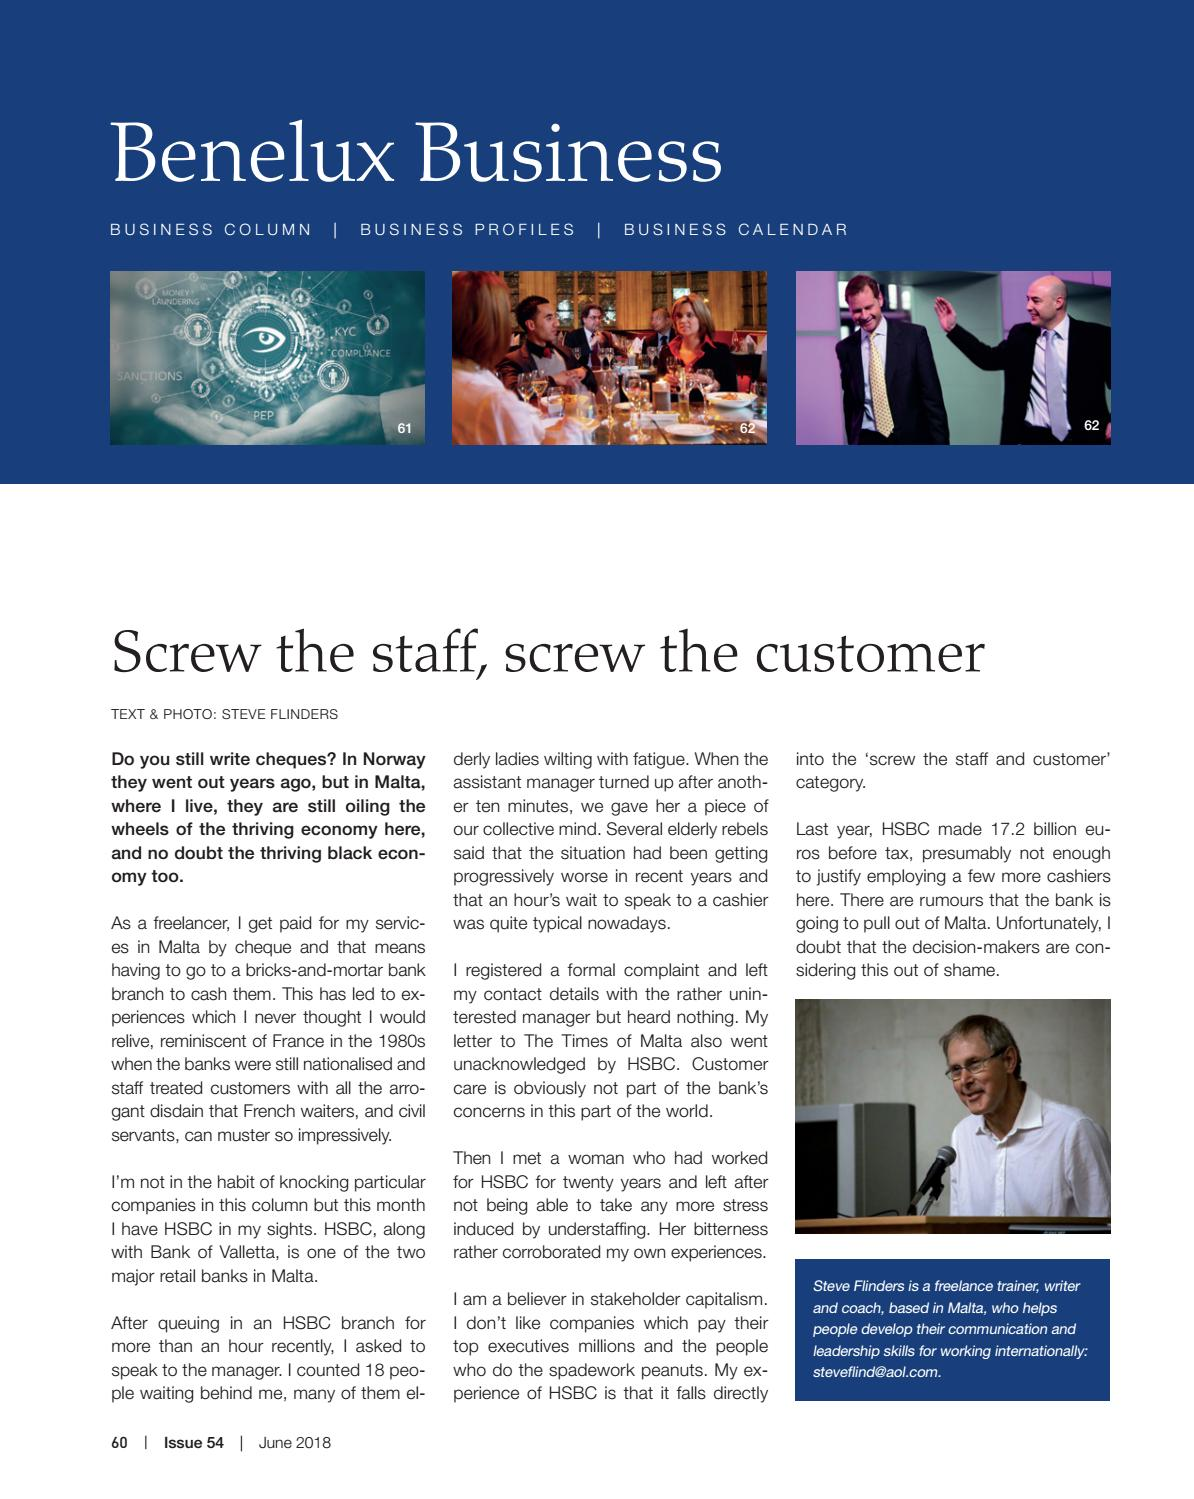 Discover Benelux, Issue 54, June 2018